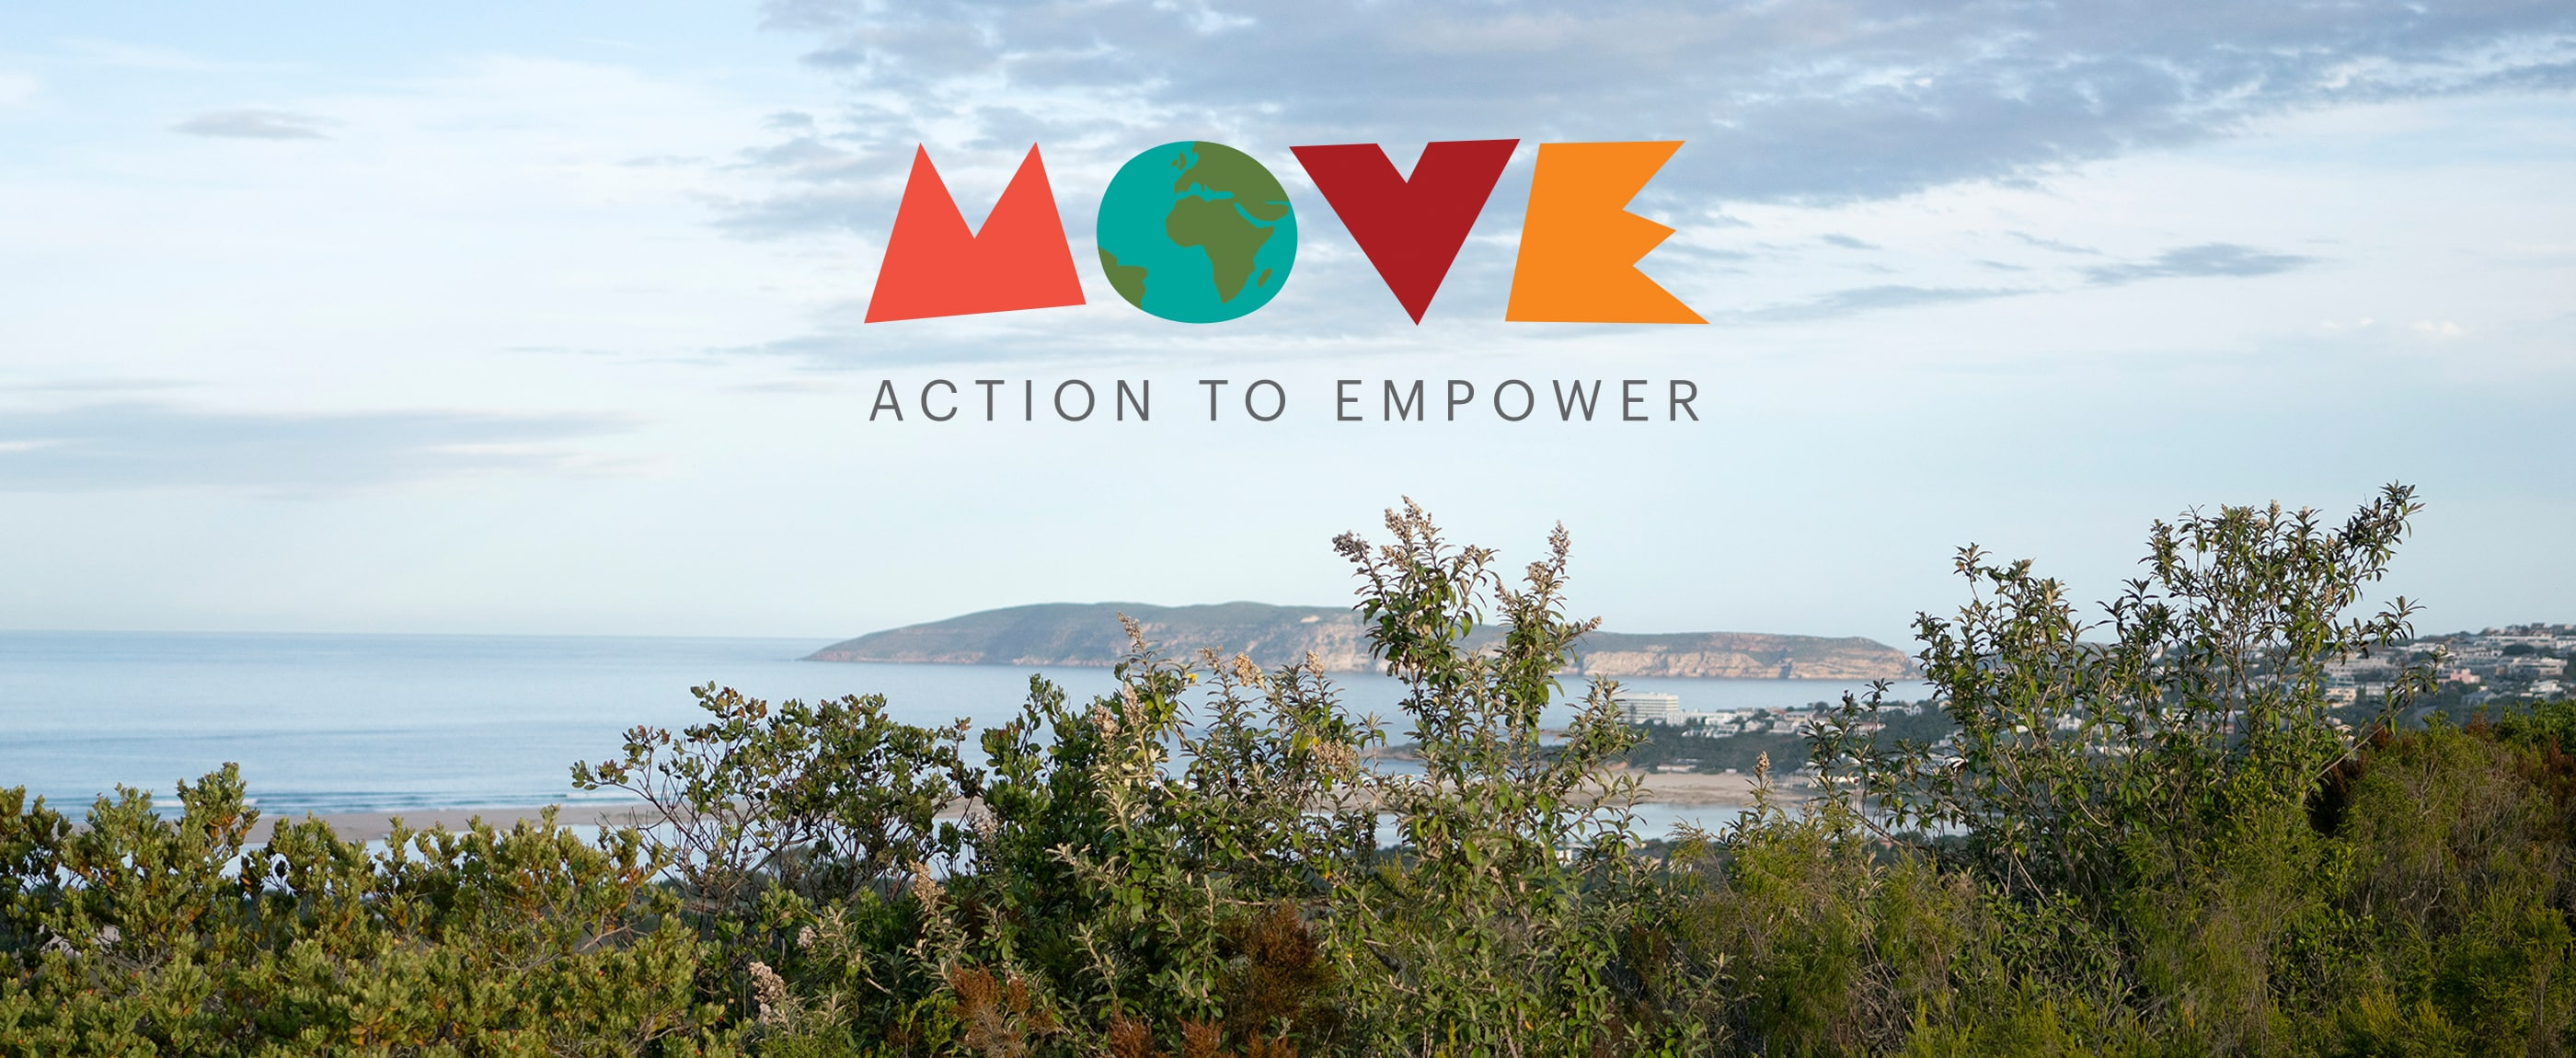 The Mungo MOVE CSR programme is our commitment to giving back to our community.